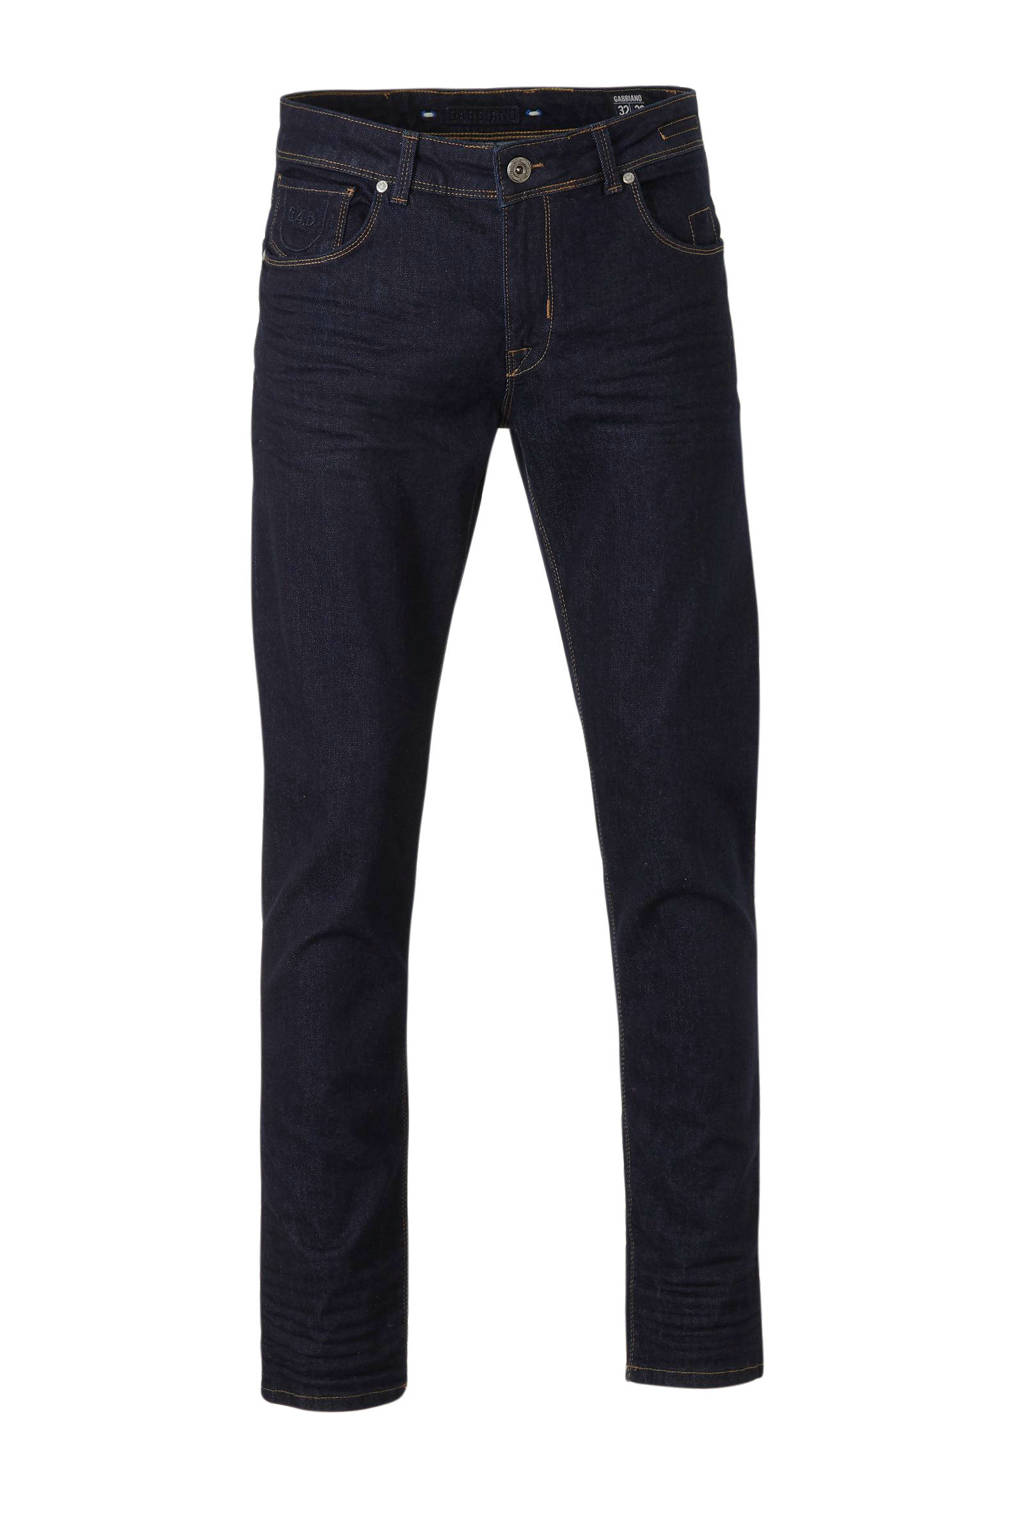 GABBIANO tapered fit jeans Bergamo, Blue rinsed